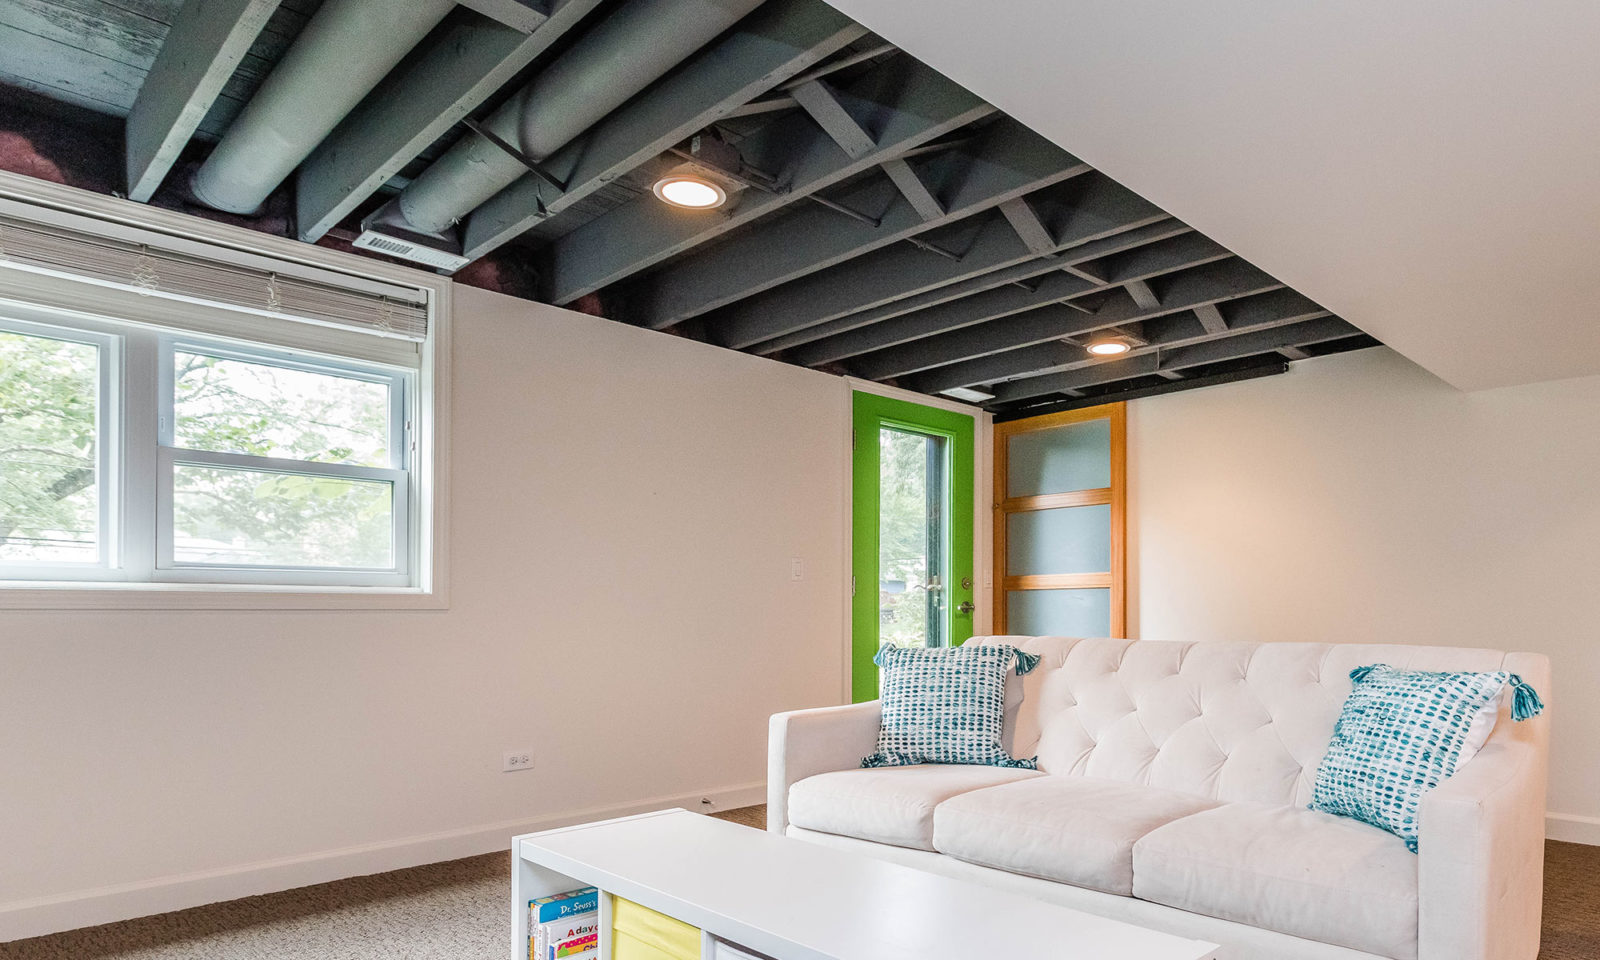 mid century modern ranch renovation and remodel view of finished basement with black painted exposed ceiling joists